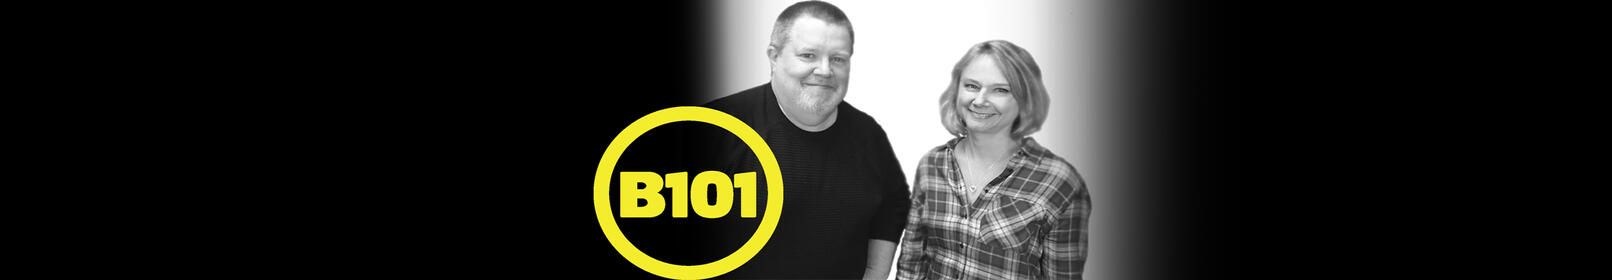 Kristin Lessard & Steve Kelly! Mornings on B101!